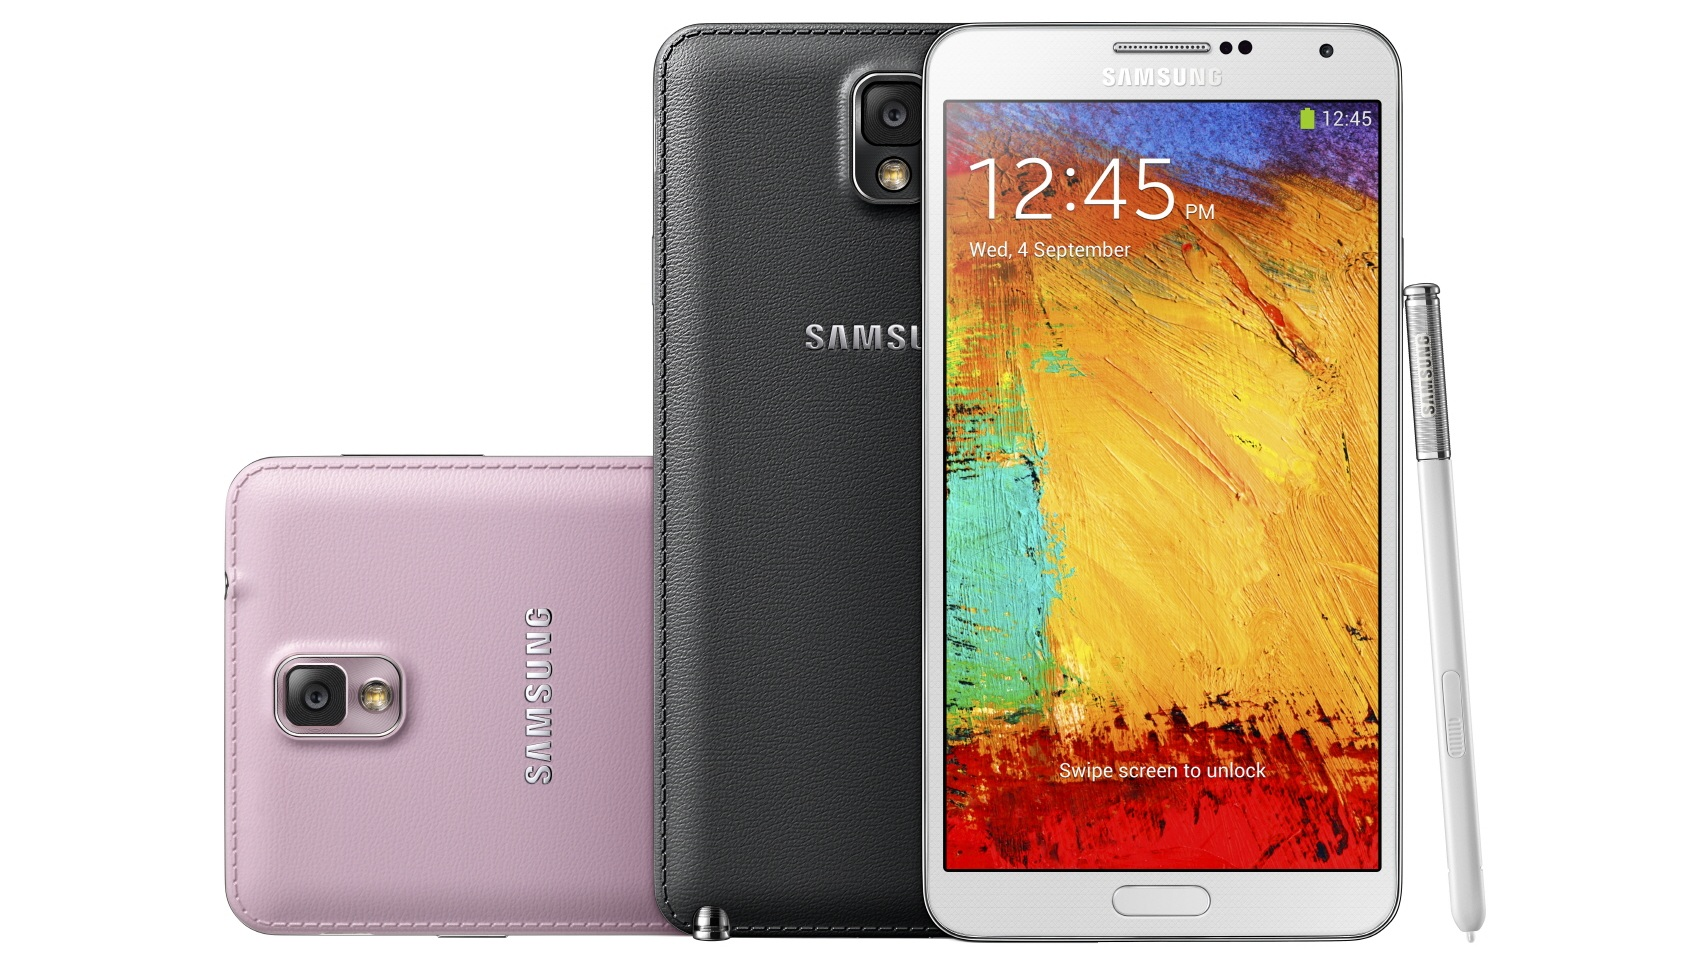 Samsung Galaxy Note 4 rumors, specifications and release date